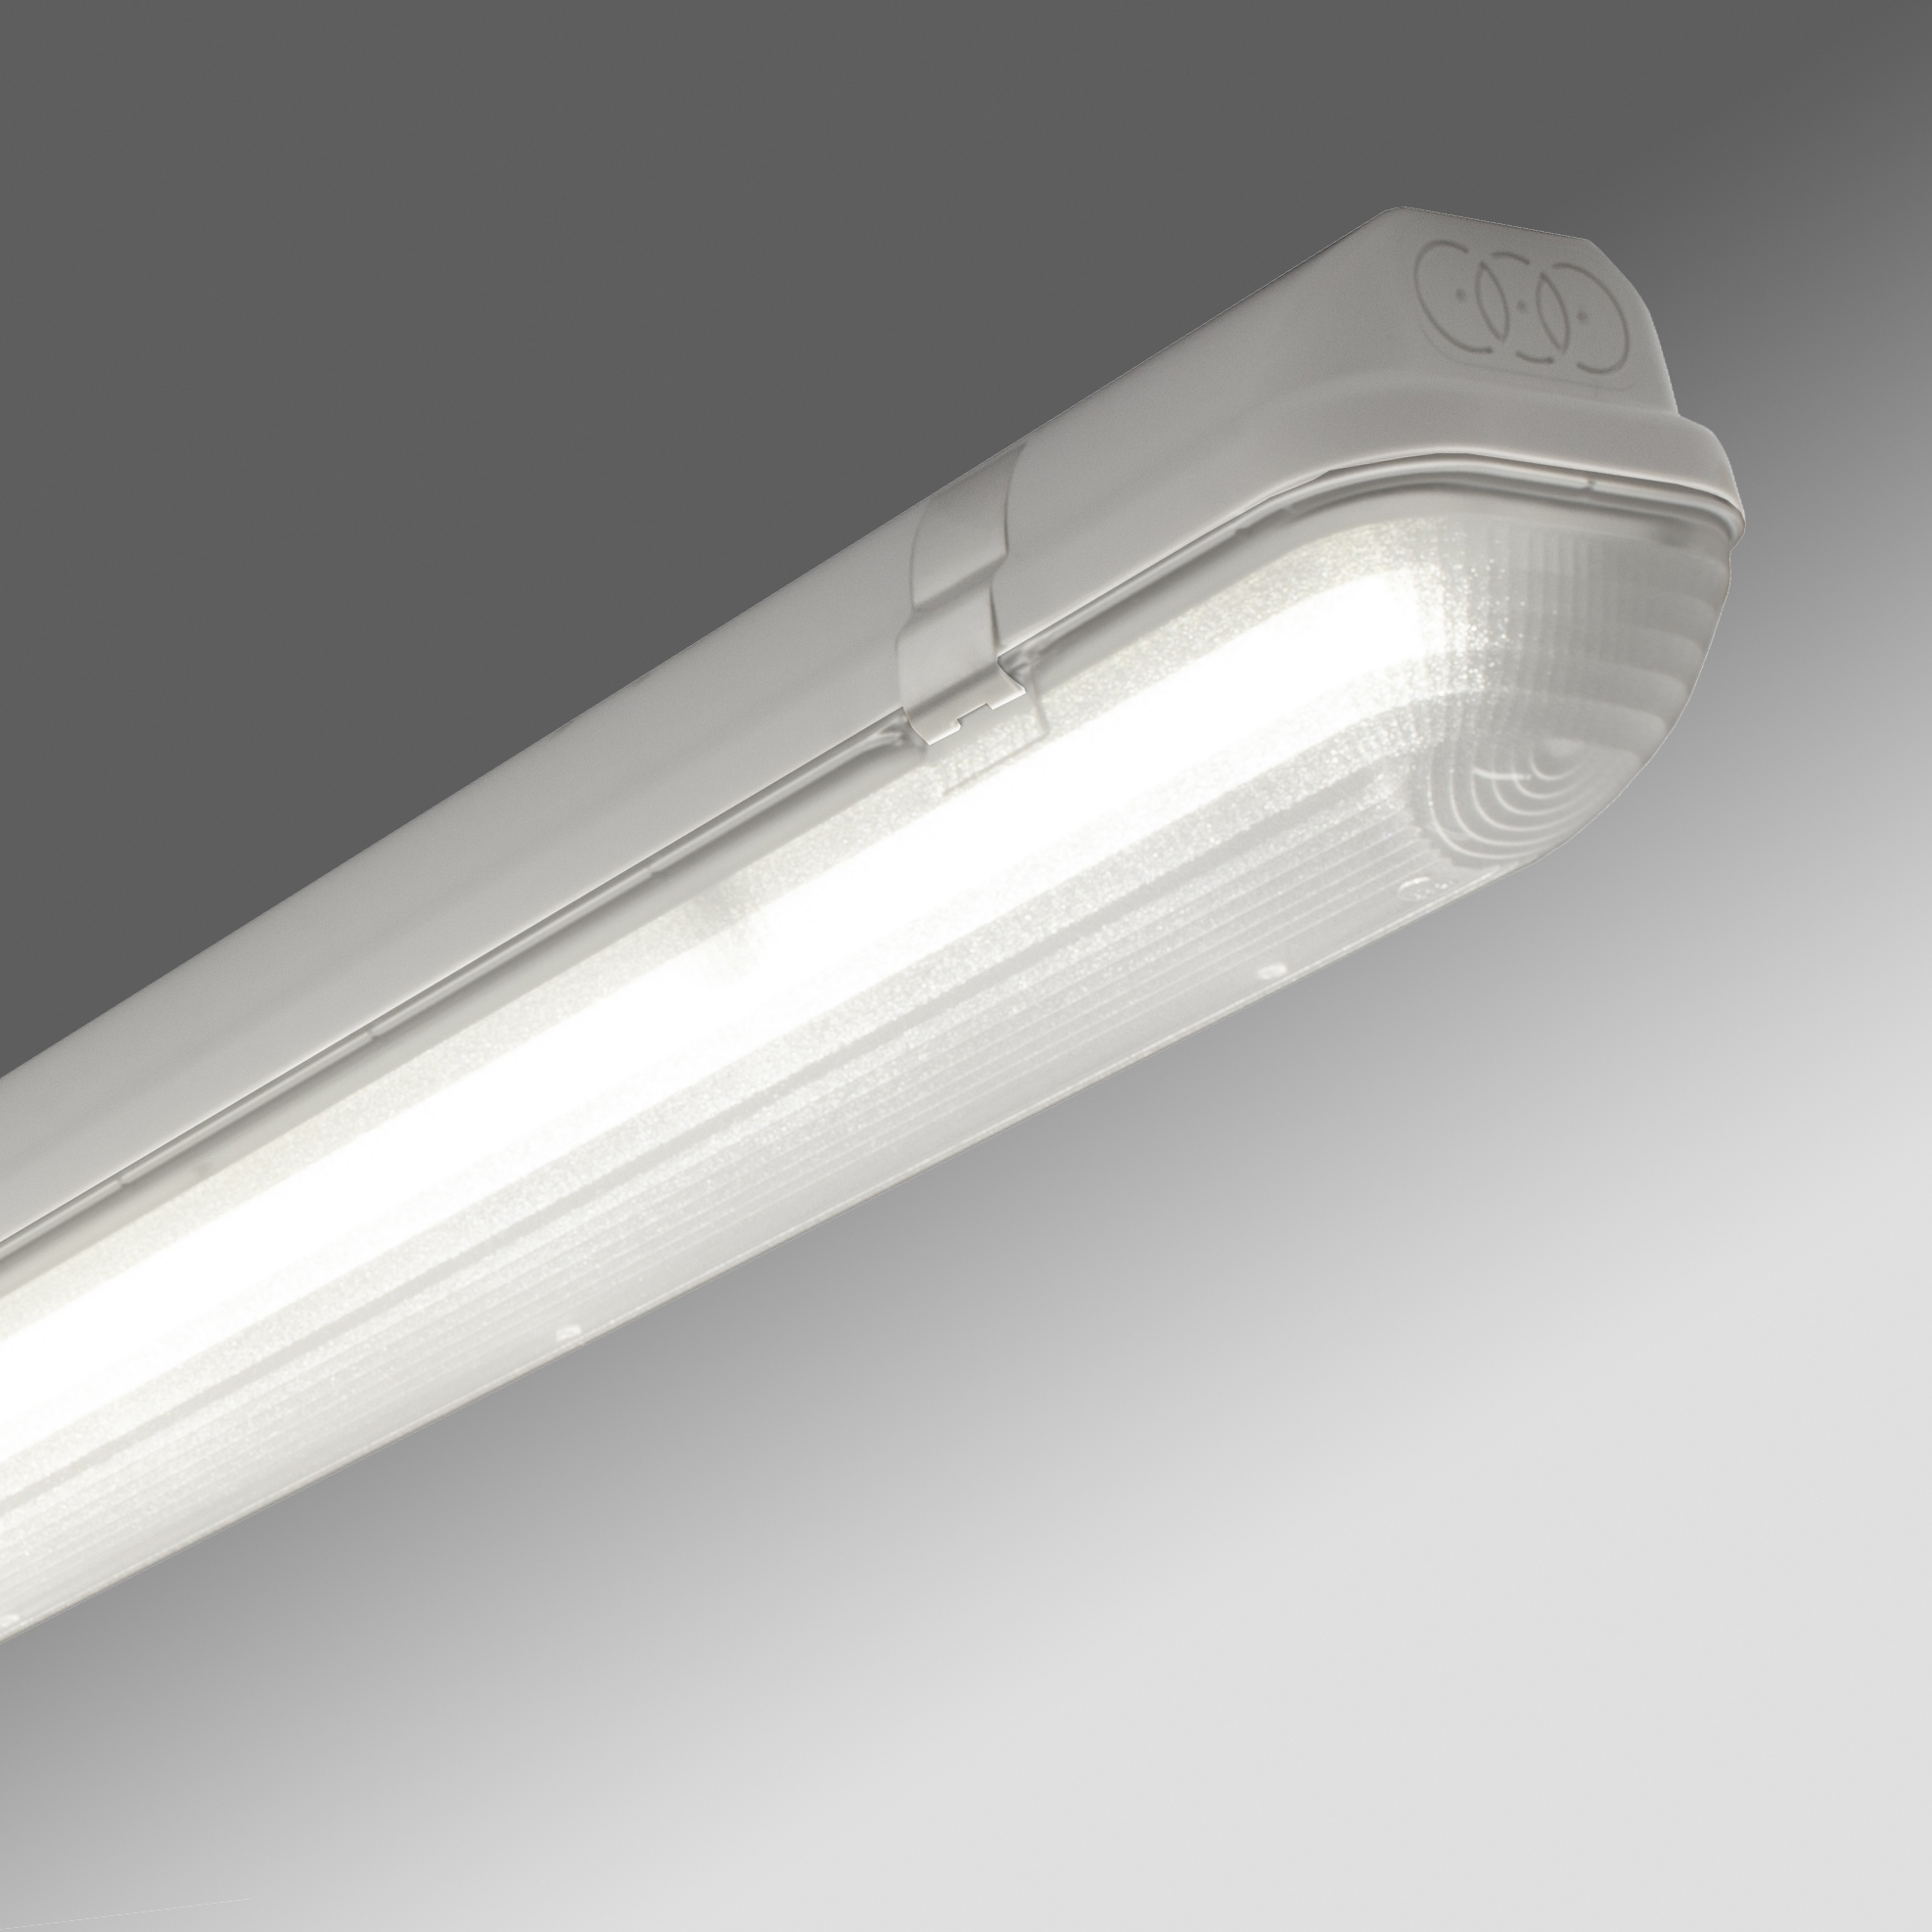 1 Stk Linda LED PC 1x30W 4000K, 4758lm, DALI, IP65, grau, l=1570mm LI2JL76130